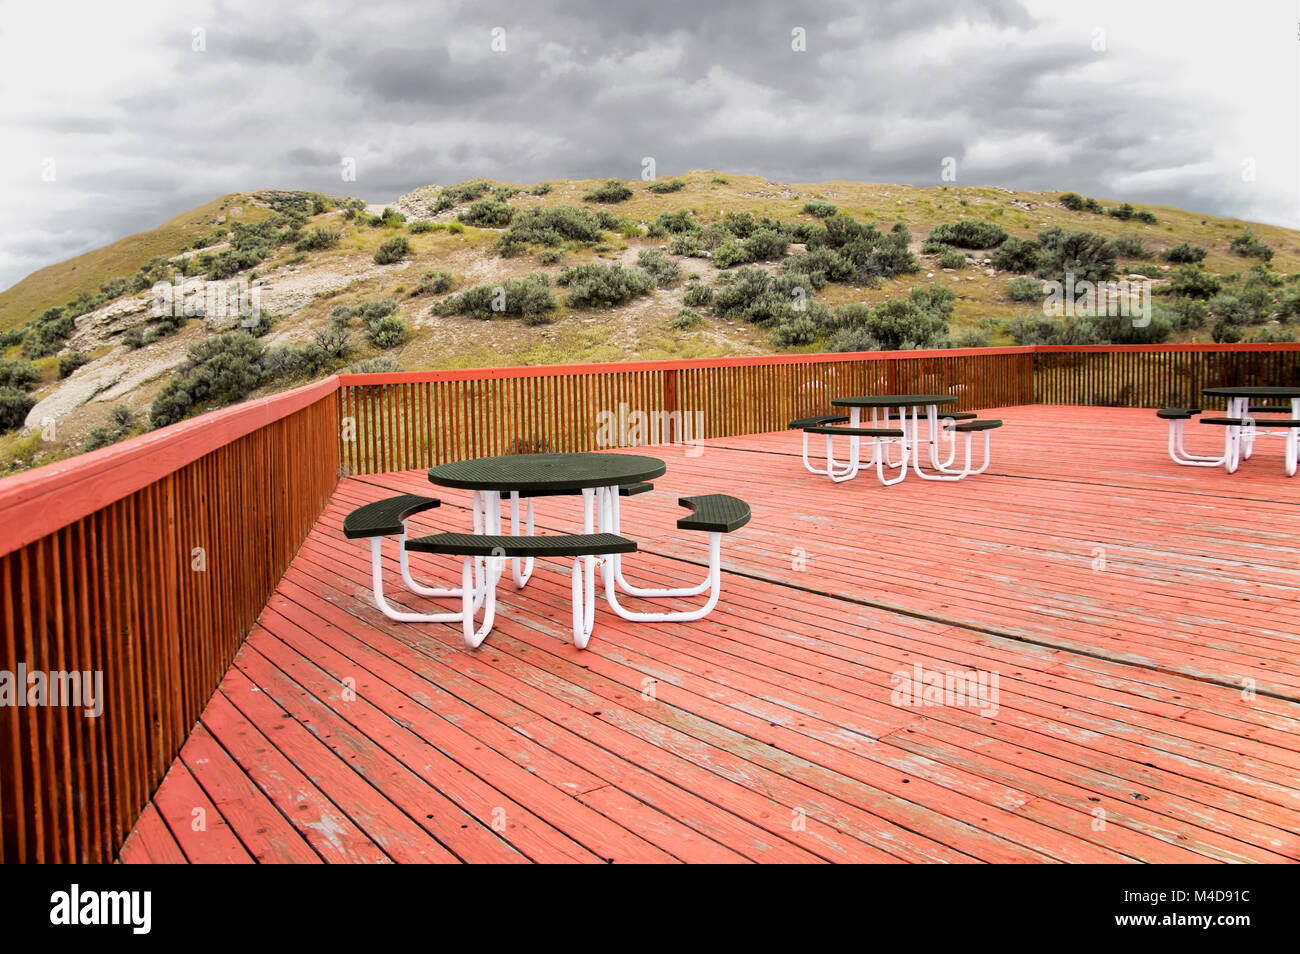 A recreation area with tables on a weathered red cedar deck looking at a desert hill with sage brush. Stock Photo